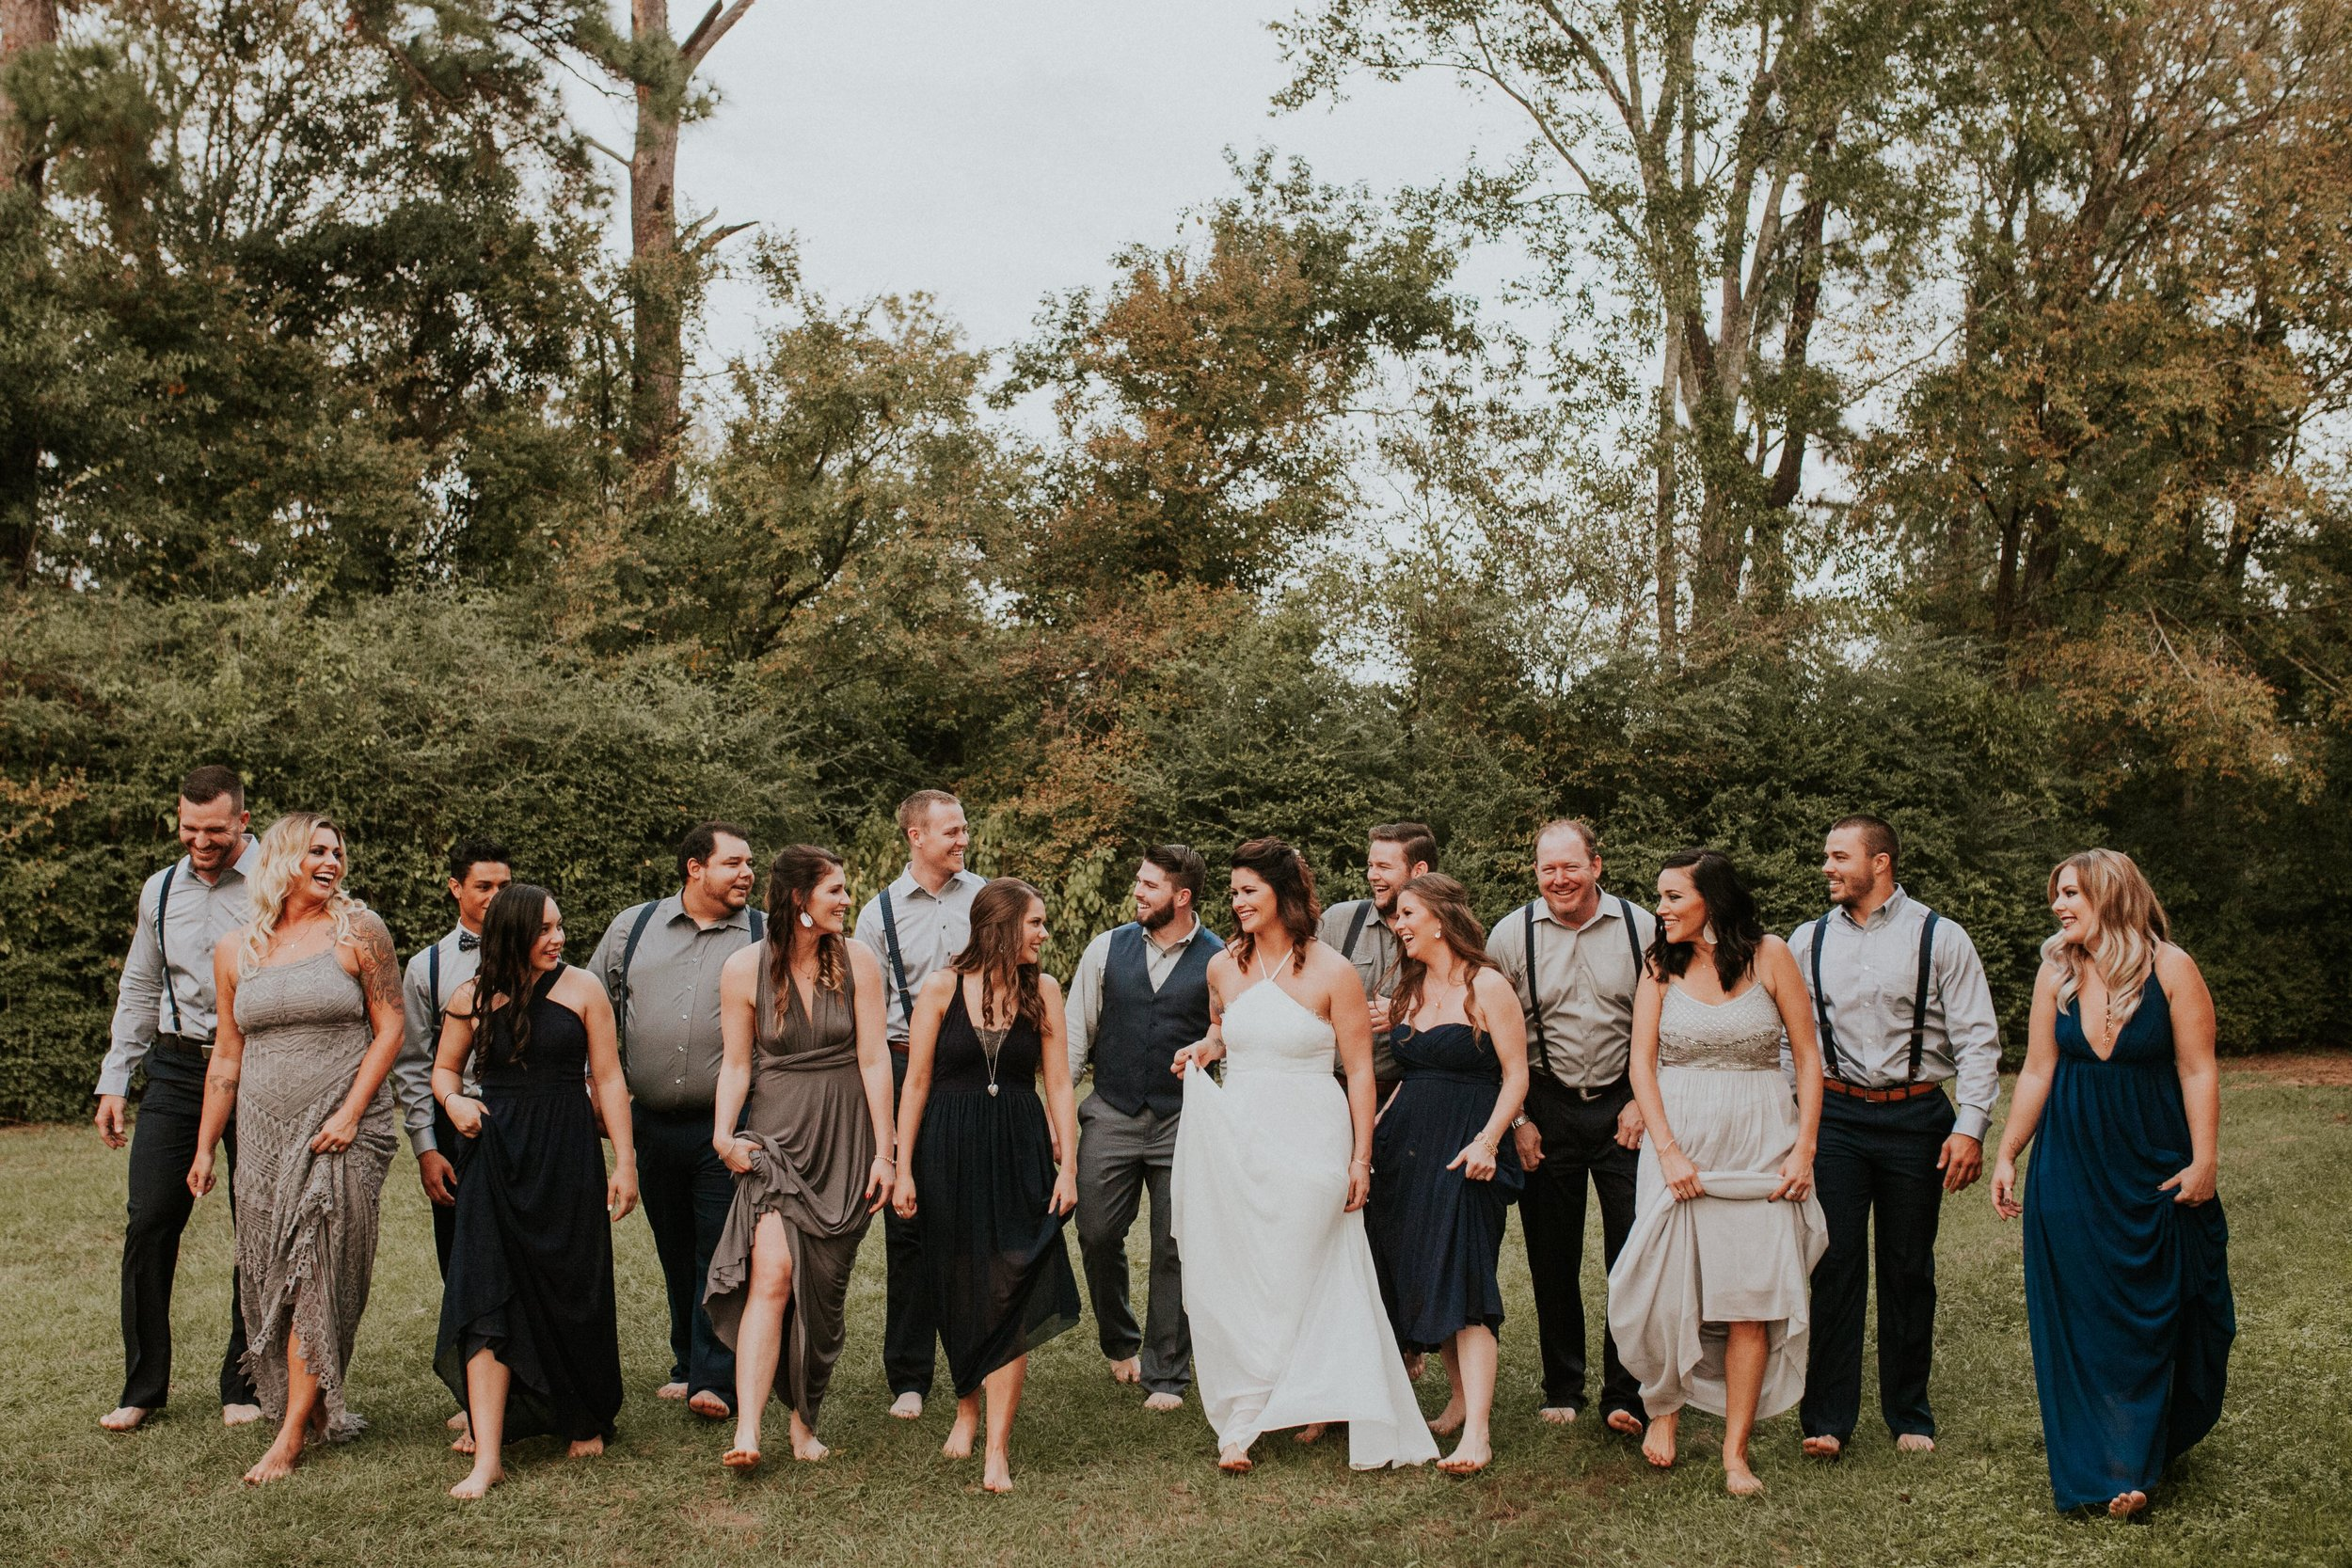 Vow Renewal in Magnolia Texas - Madeleine Frost Wedding Photographer - Sized for Blog-52.jpg